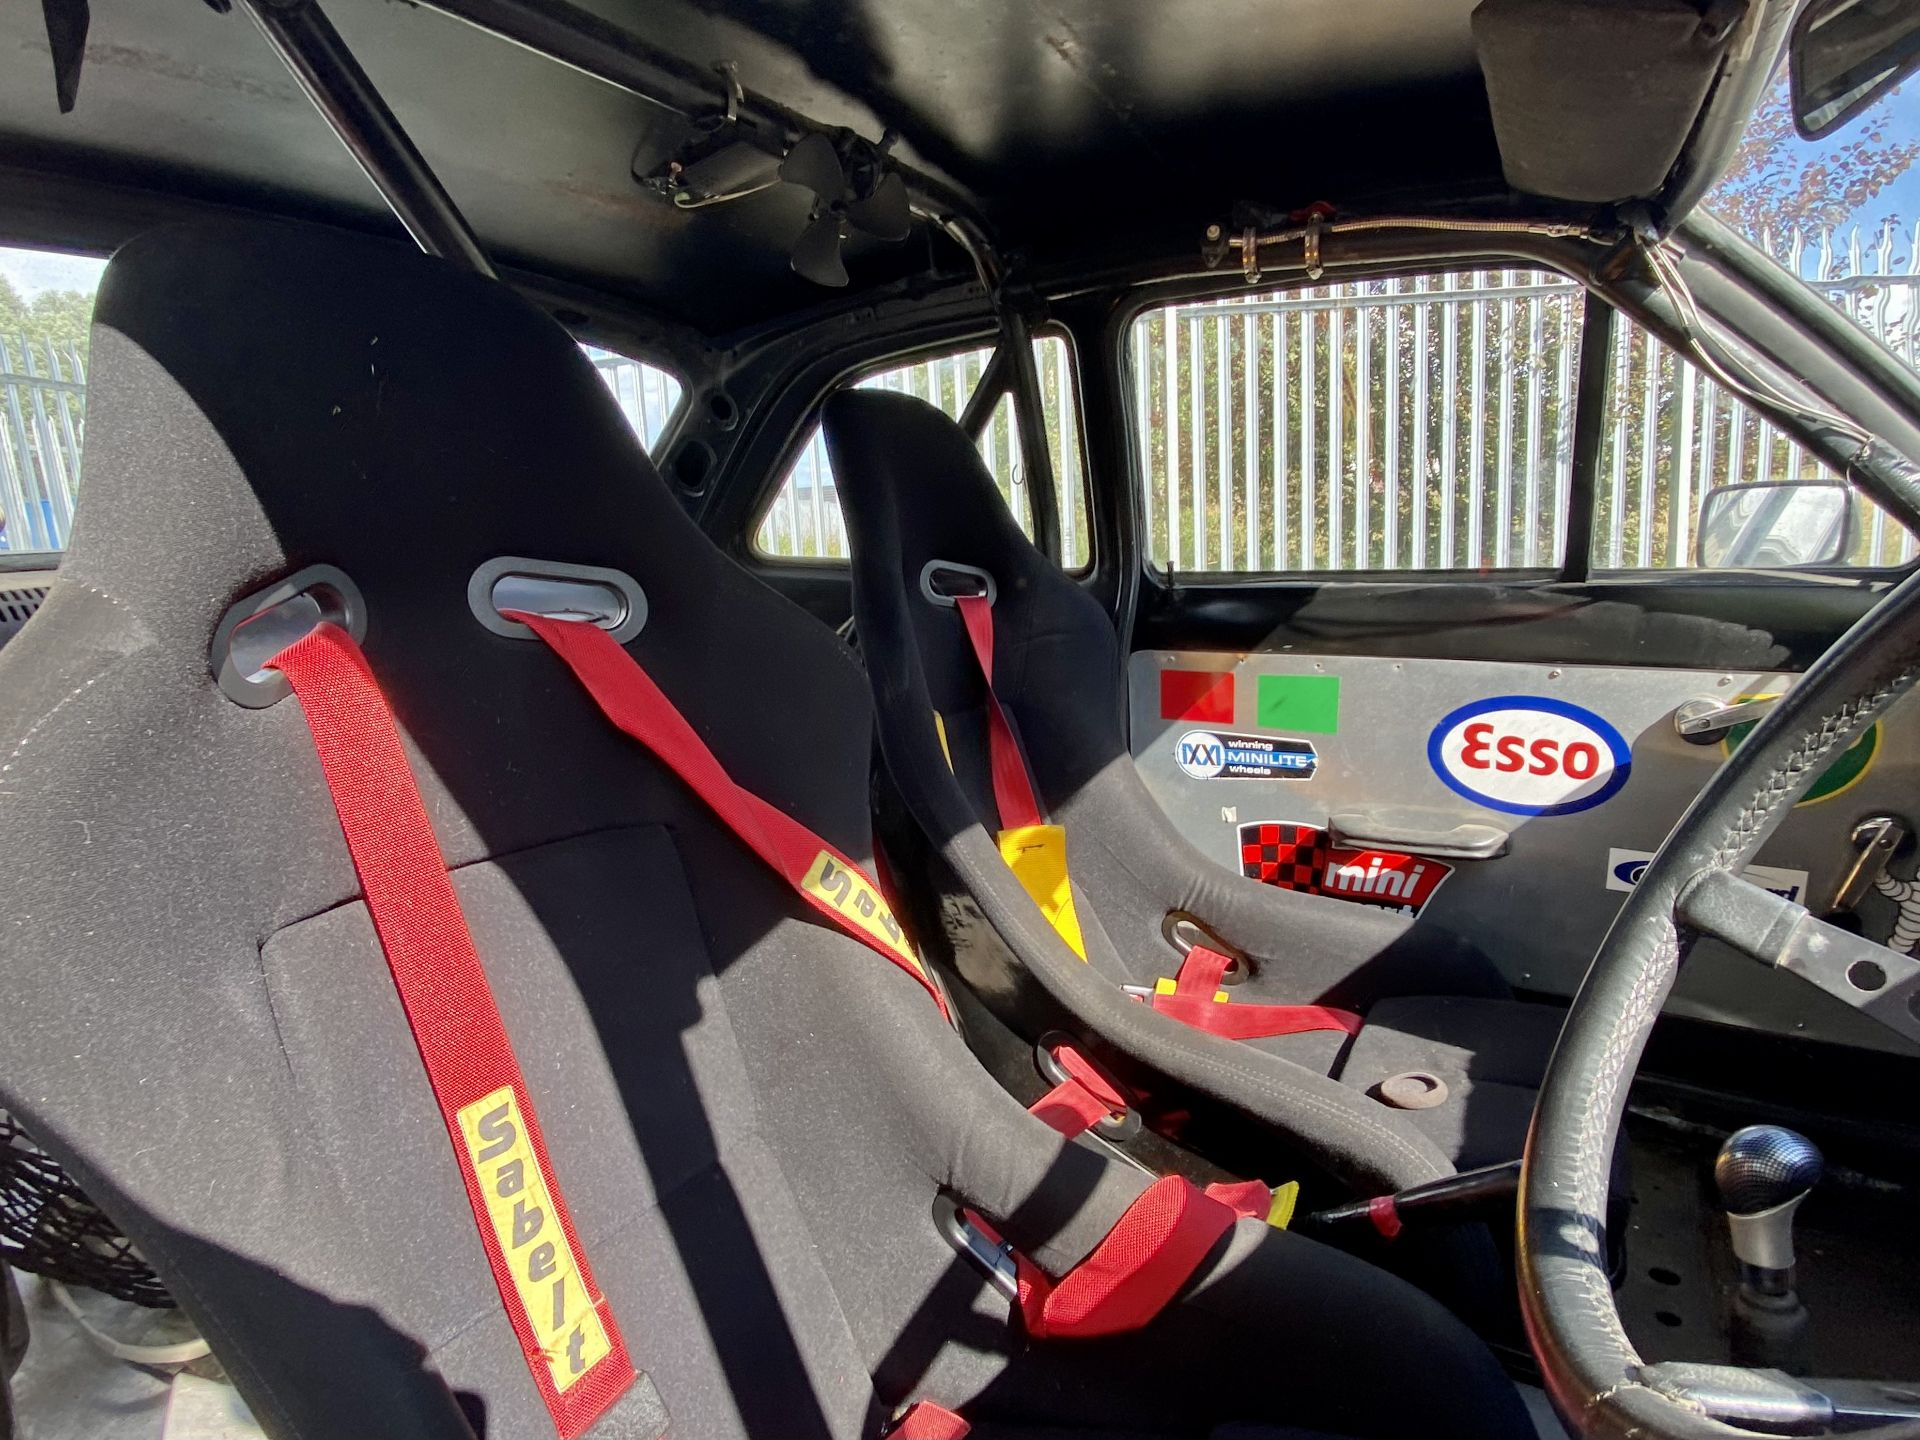 Ford Escort Mexico - Image 35 of 51